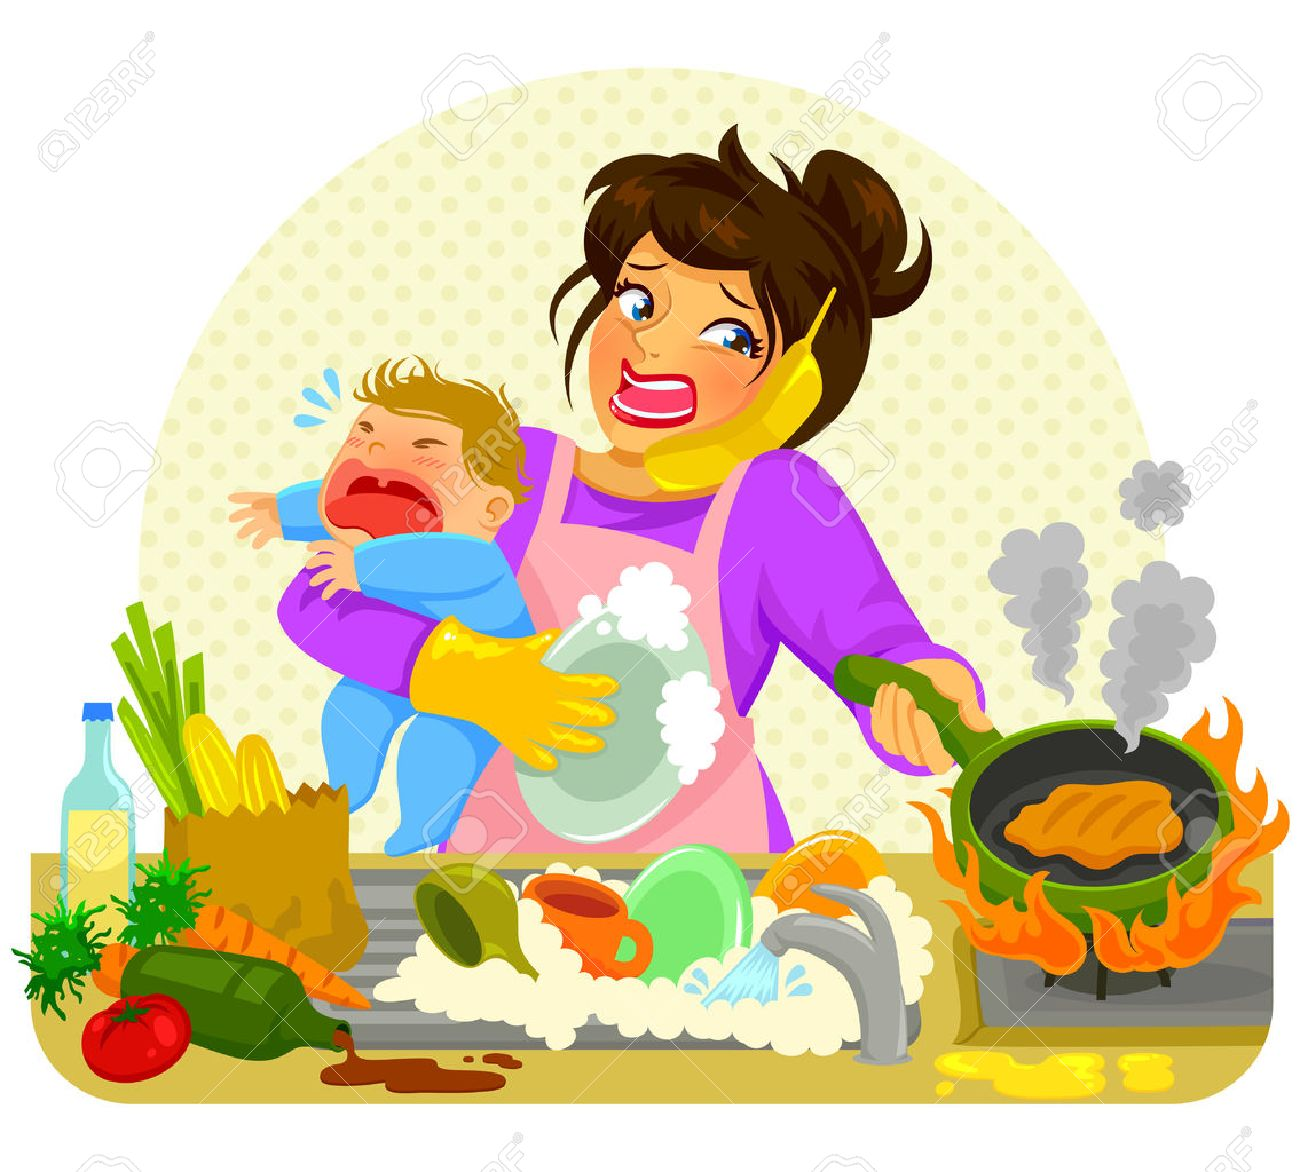 stressed young woman doing many tasks while holding a crying baby - 55083951